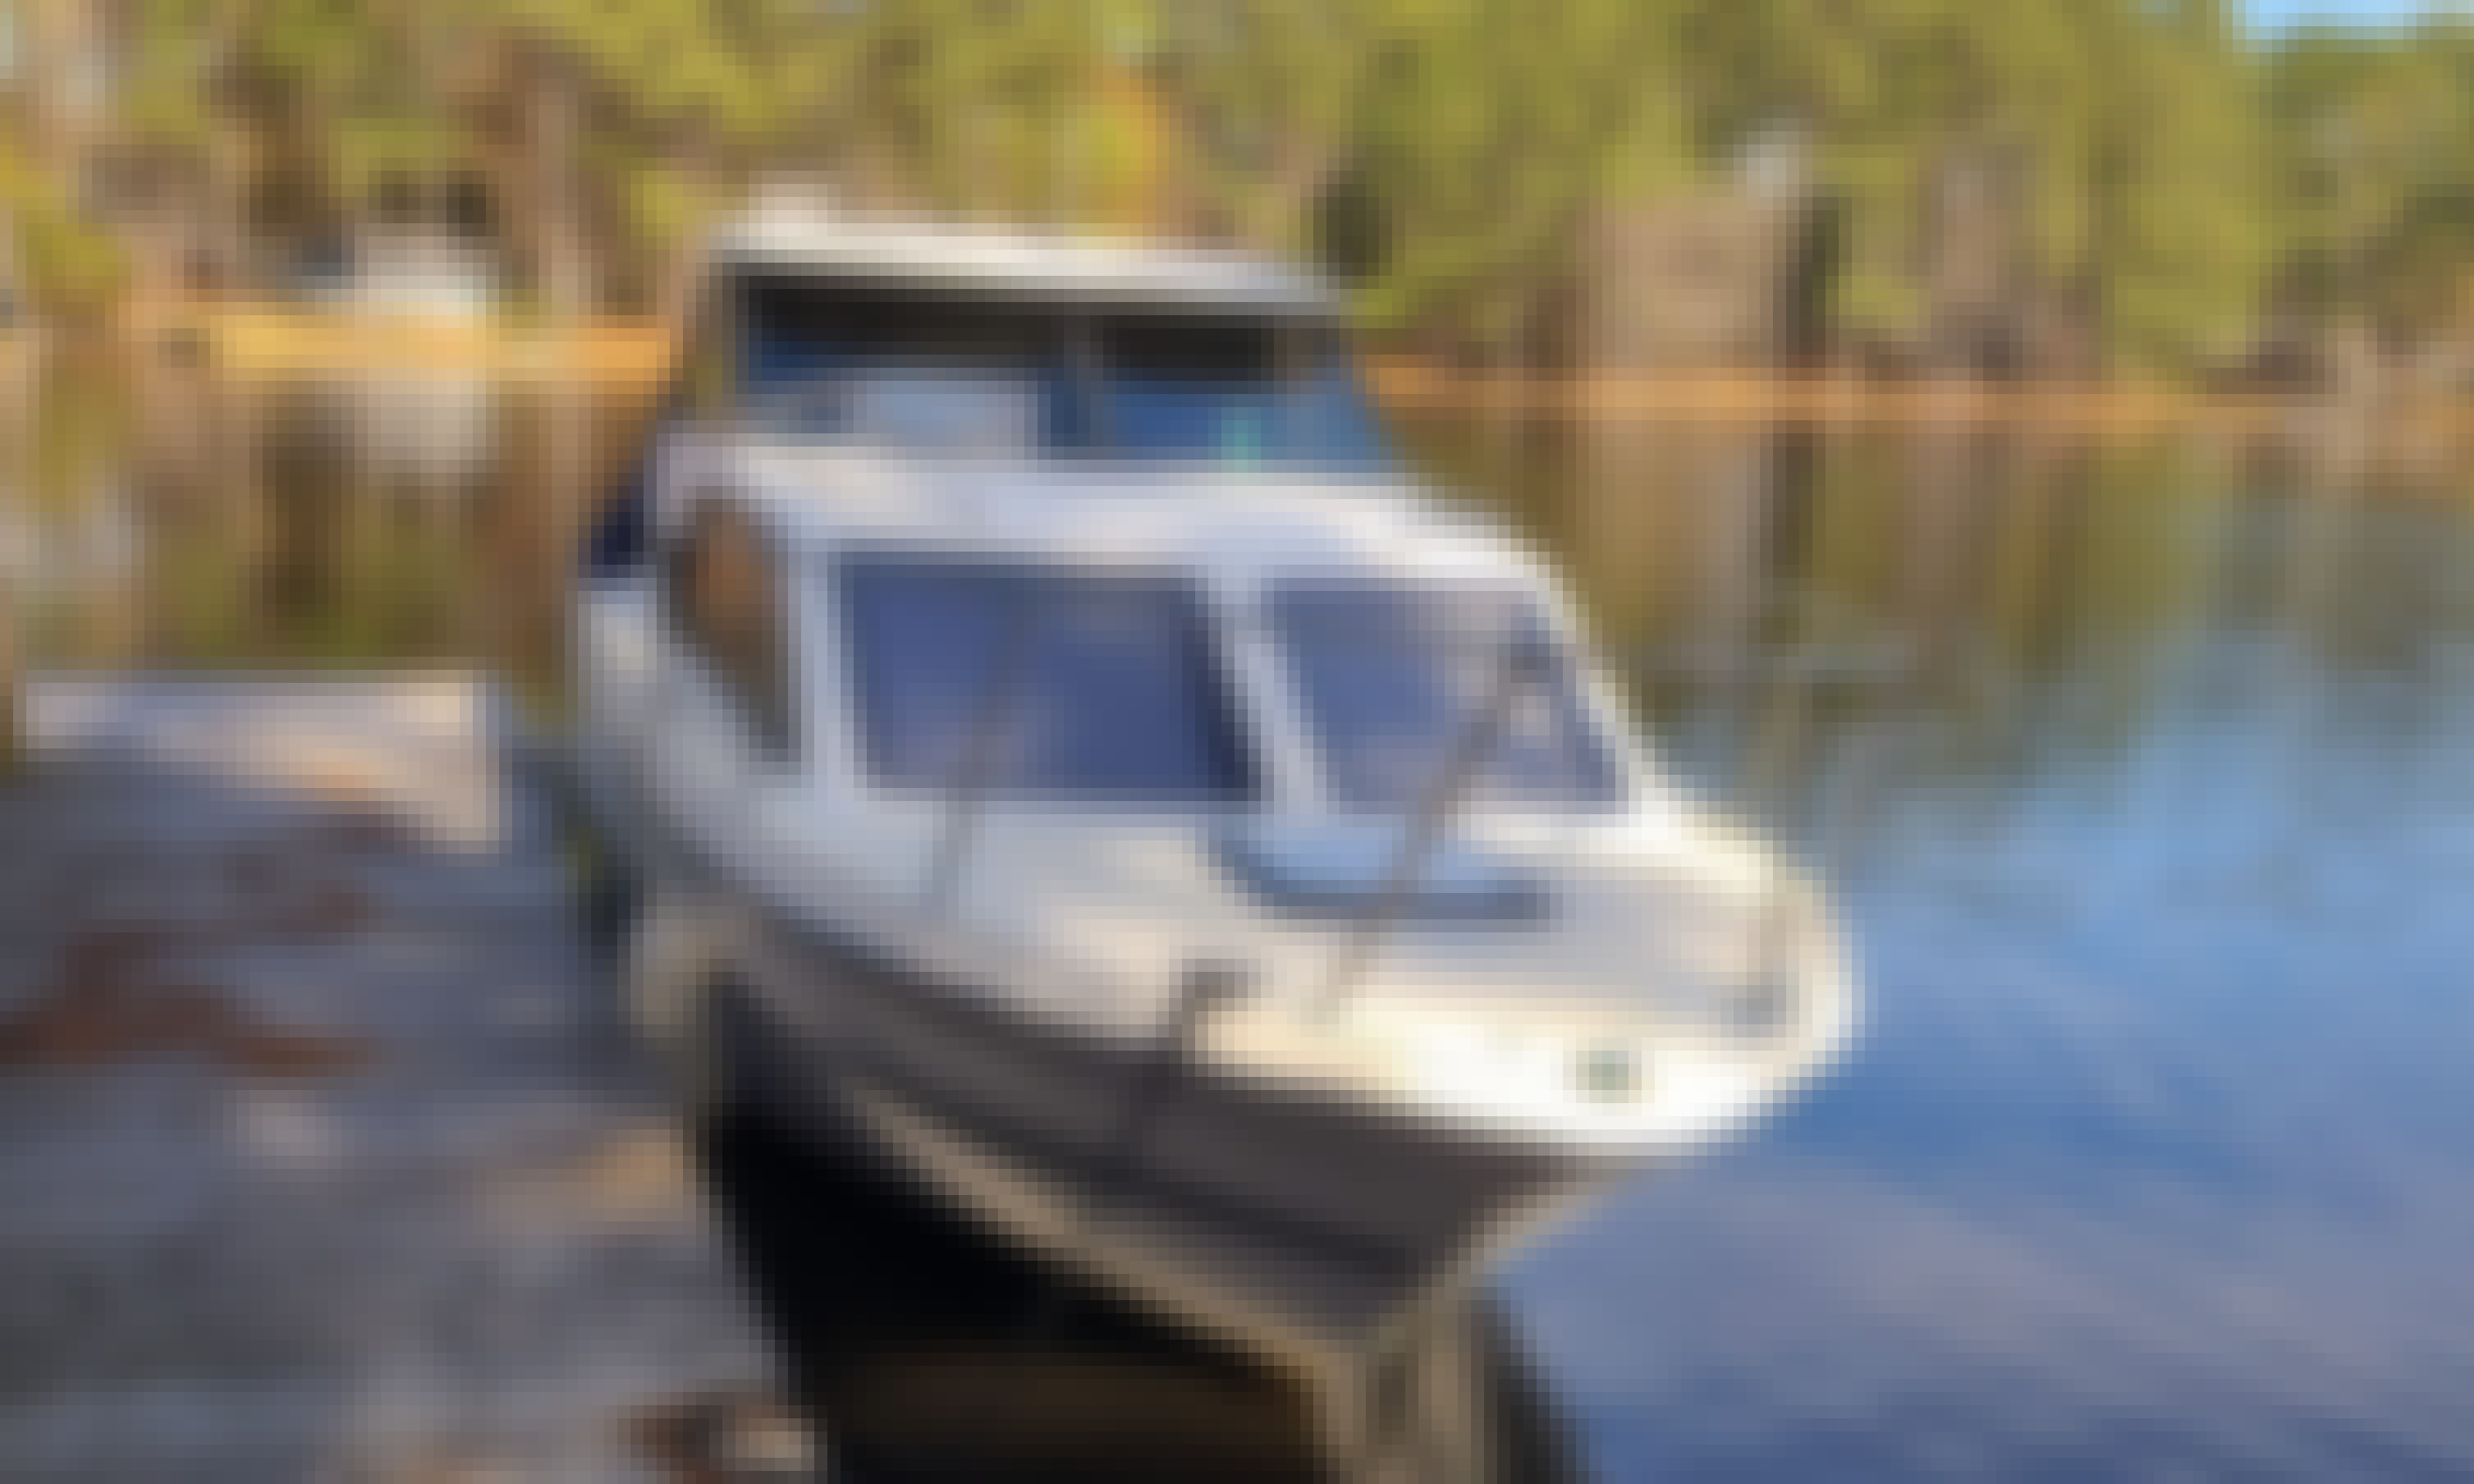 Cabin Cruiser in Indian Springs! Perfect for a day on the water